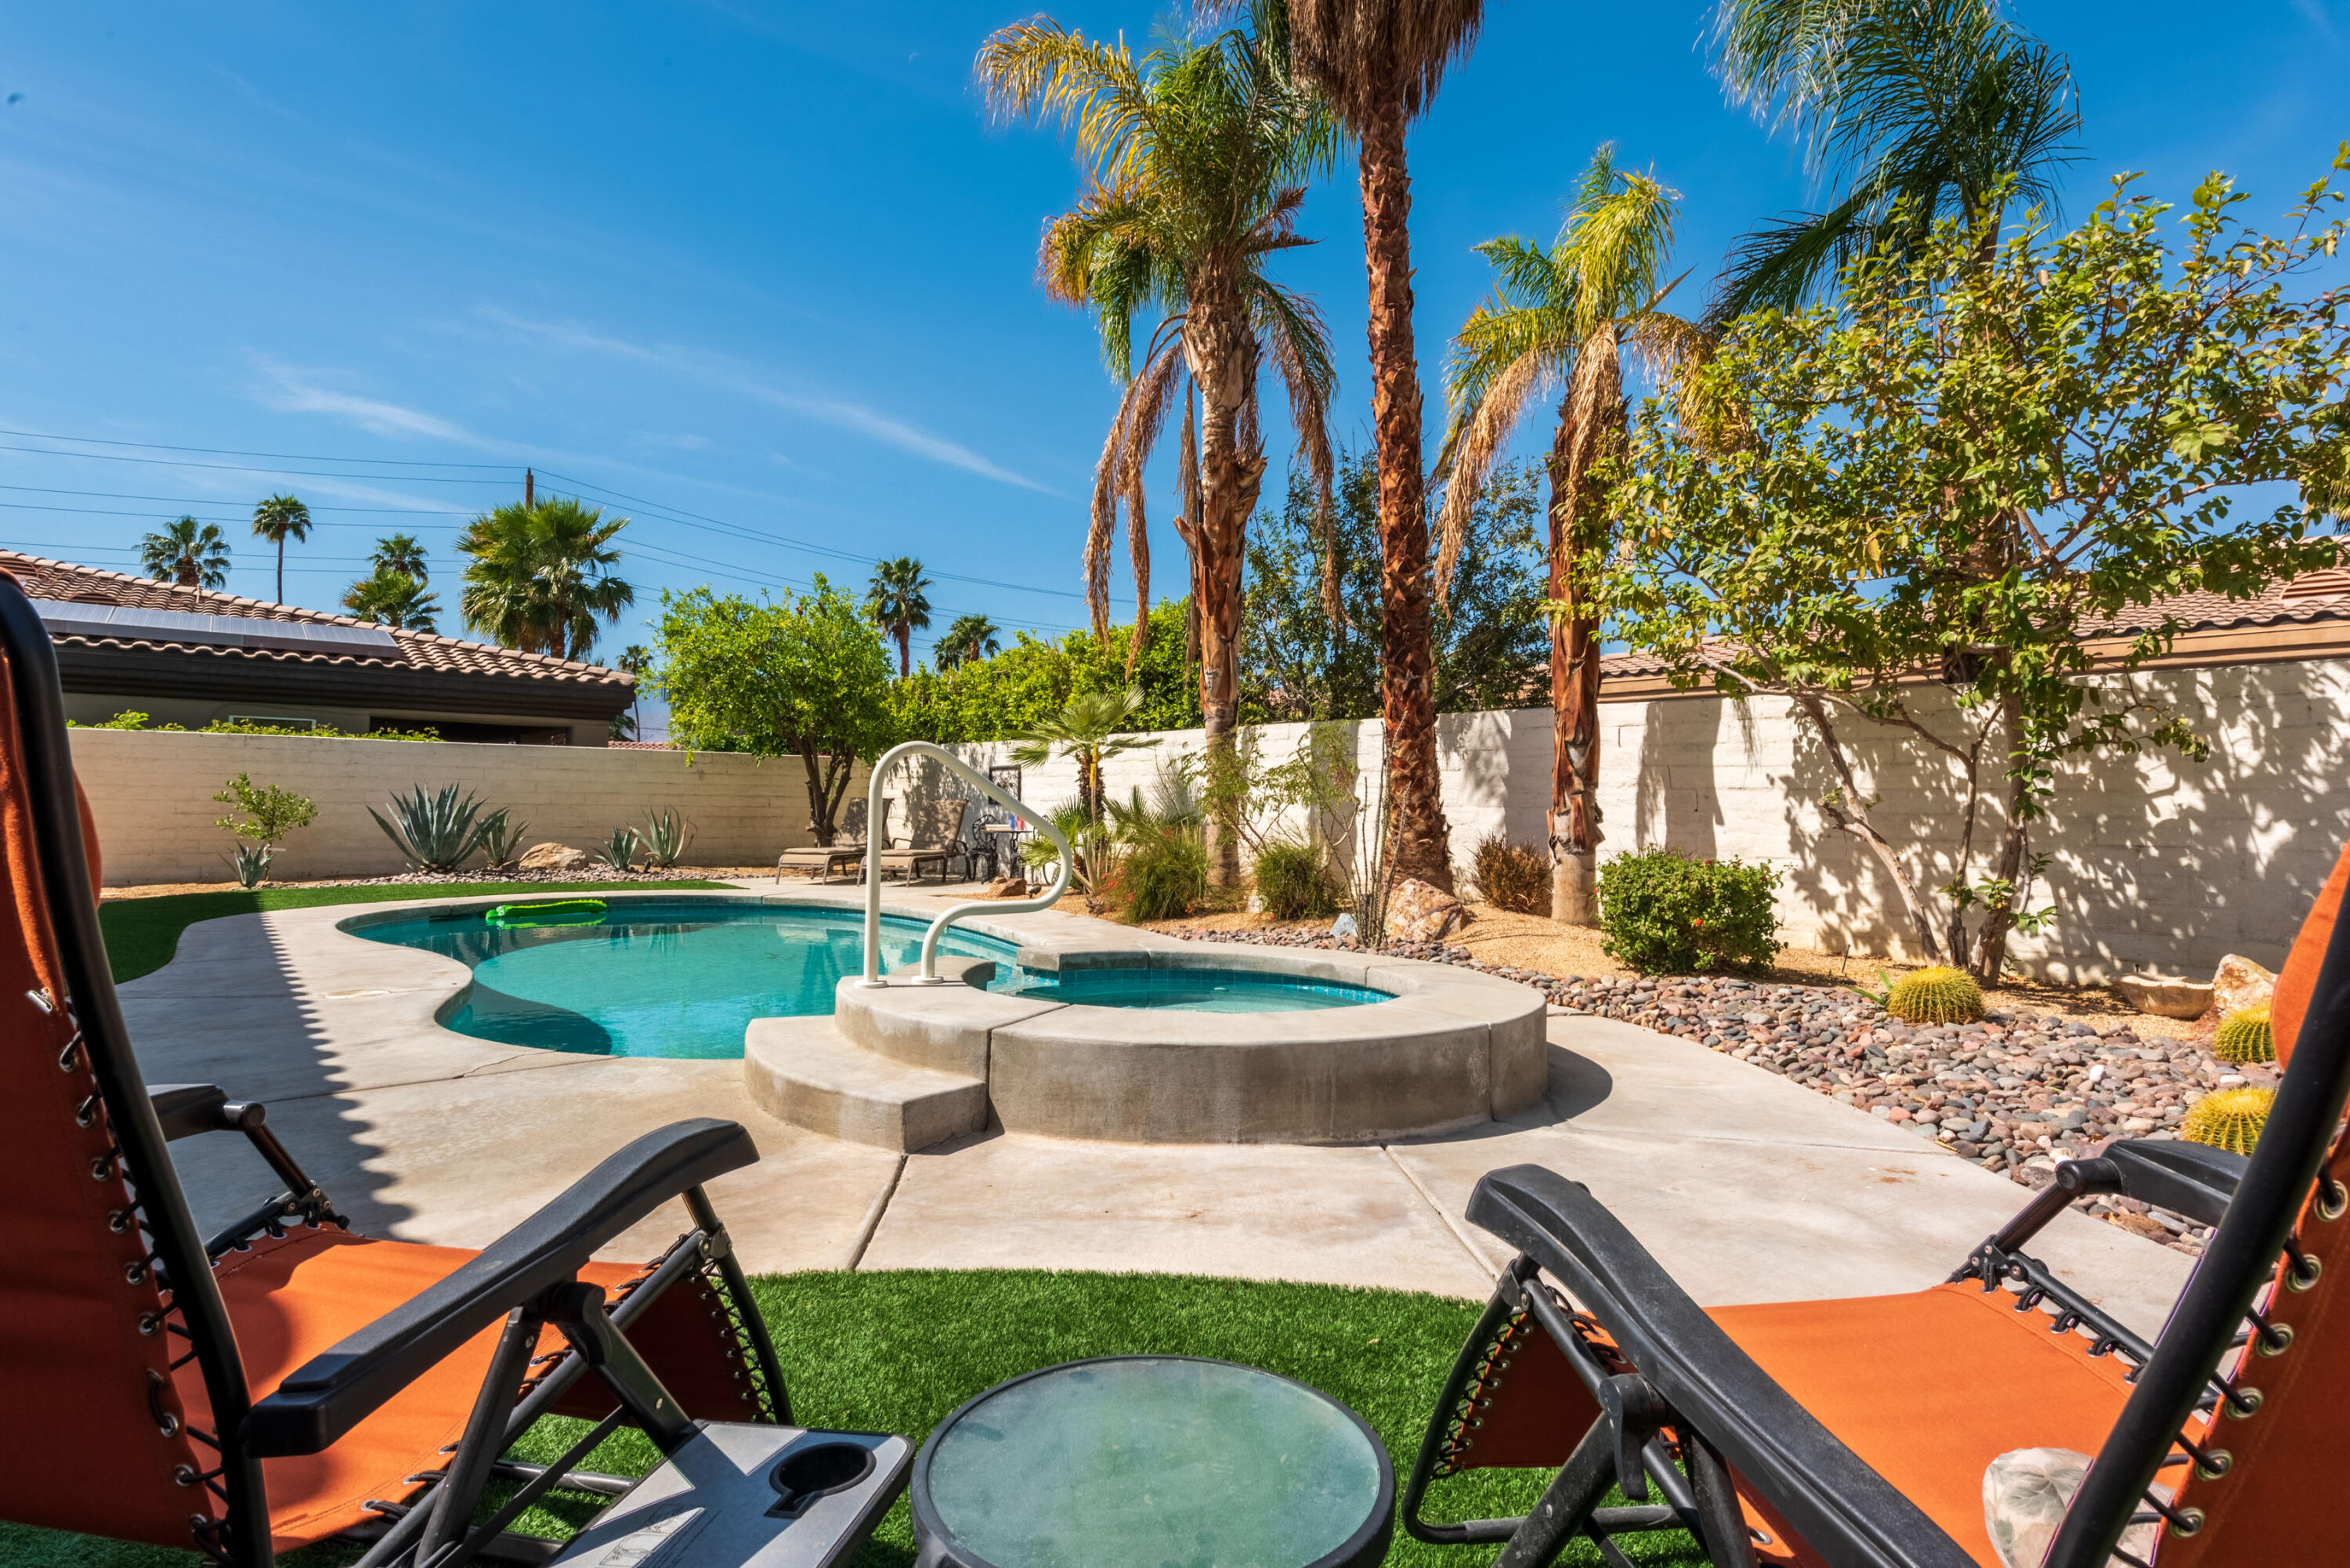 SUNNY back yard/pool! Great central Palm Desert location, perfect for full-timers or snowbirds. This home sits on a large 10,019 lot on quiet cul-de-sac in the highly desirable ungated Hovley Lane West area (with no HOA dues). This spacious, upgraded TURNKEY FURNISHED 2,420 square feet home provides you with 3 bedrooms, 3 bathrooms, an open concept floor plan, fireplace in the large family room, primary suite with separate soaker tub and shower and large walk-in closet, and a kitchen with slab granite counters, in sink hot water dispenser, a center island with a gas cook top and a breakfast bar. Once you step outside the kitchen and family room, you'll fall in love with the entertainer's backyard, complete with large covered patio area with a misting system, built in BBQ, pool, and spa with pebble texture finish and mountain views. As an added bonus, a wide double gate allows access to the side yard with a pad for RV PARKING. Centrally located in Palm Desert, situated between Monterey and Portola for easy access to El Paseo, McCallum Theatre, College of the Desert, Desert Willow Golf Resort (where Palm Desert residents can golf for discounted greens fees), nearby shopping and dining, and many of the Coachella valley's attractions and events.*BMW convertible available outside of Escrow.